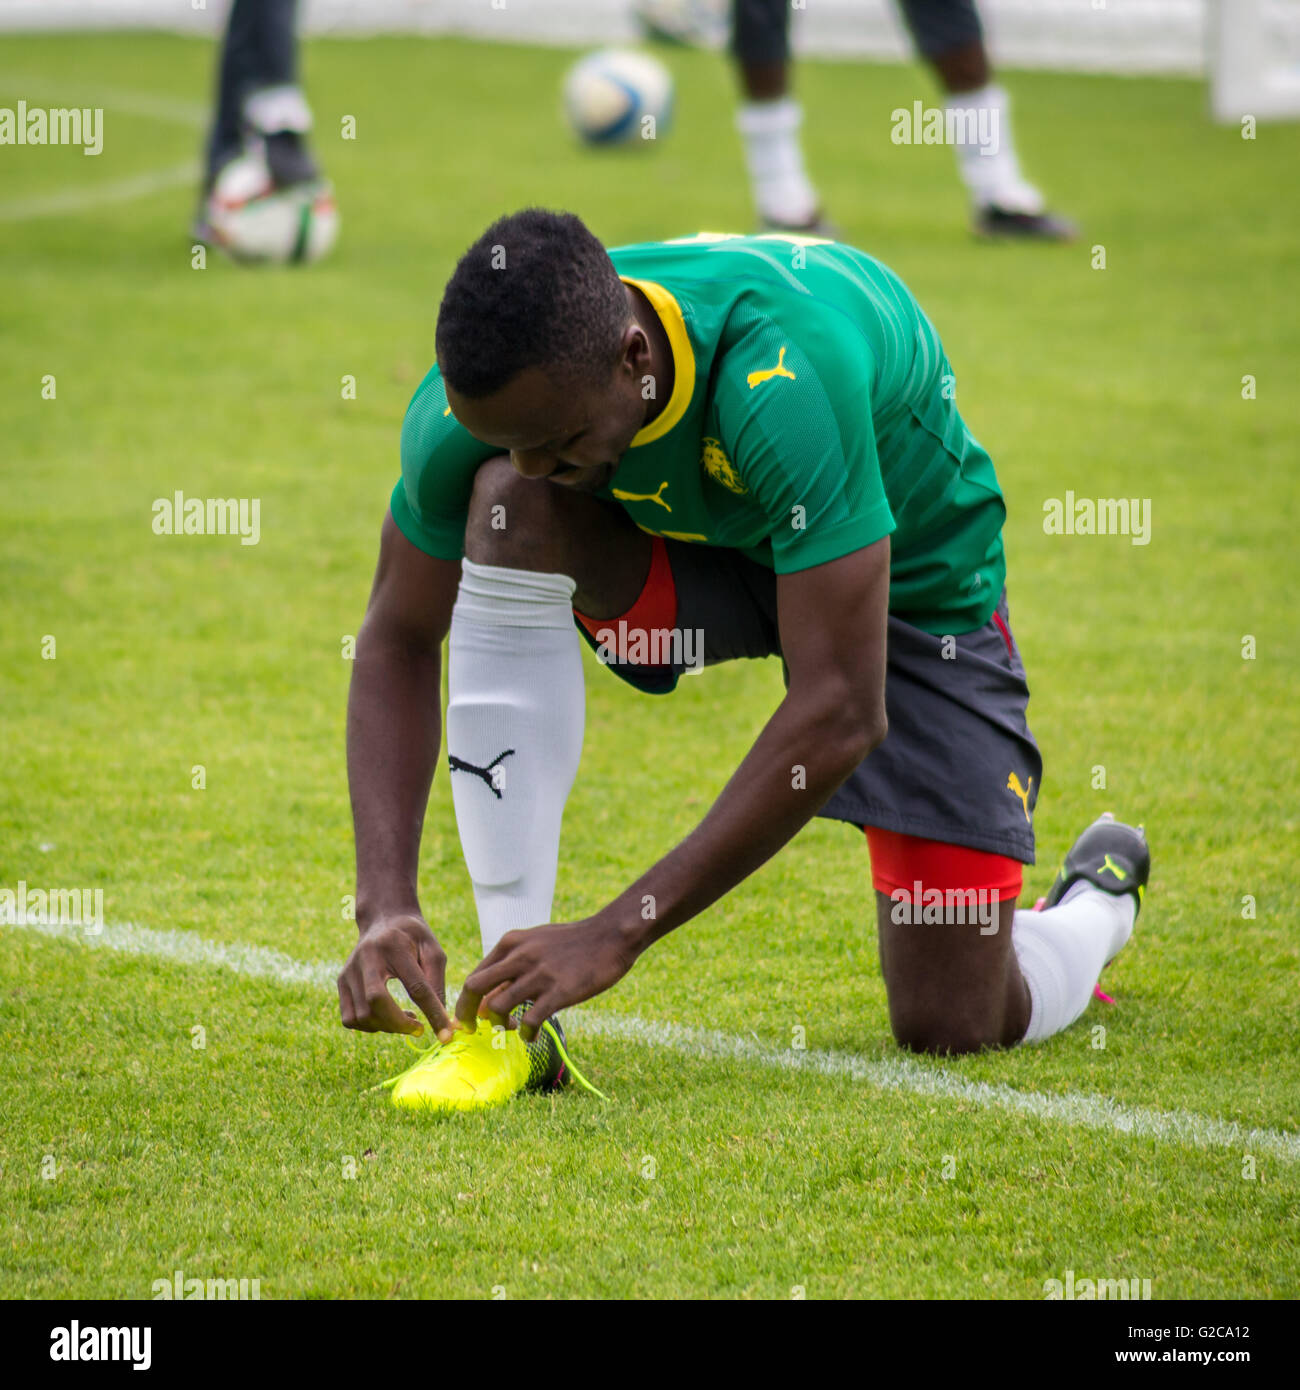 Cameroon national football team training session in Nantes, France. - Stock Image